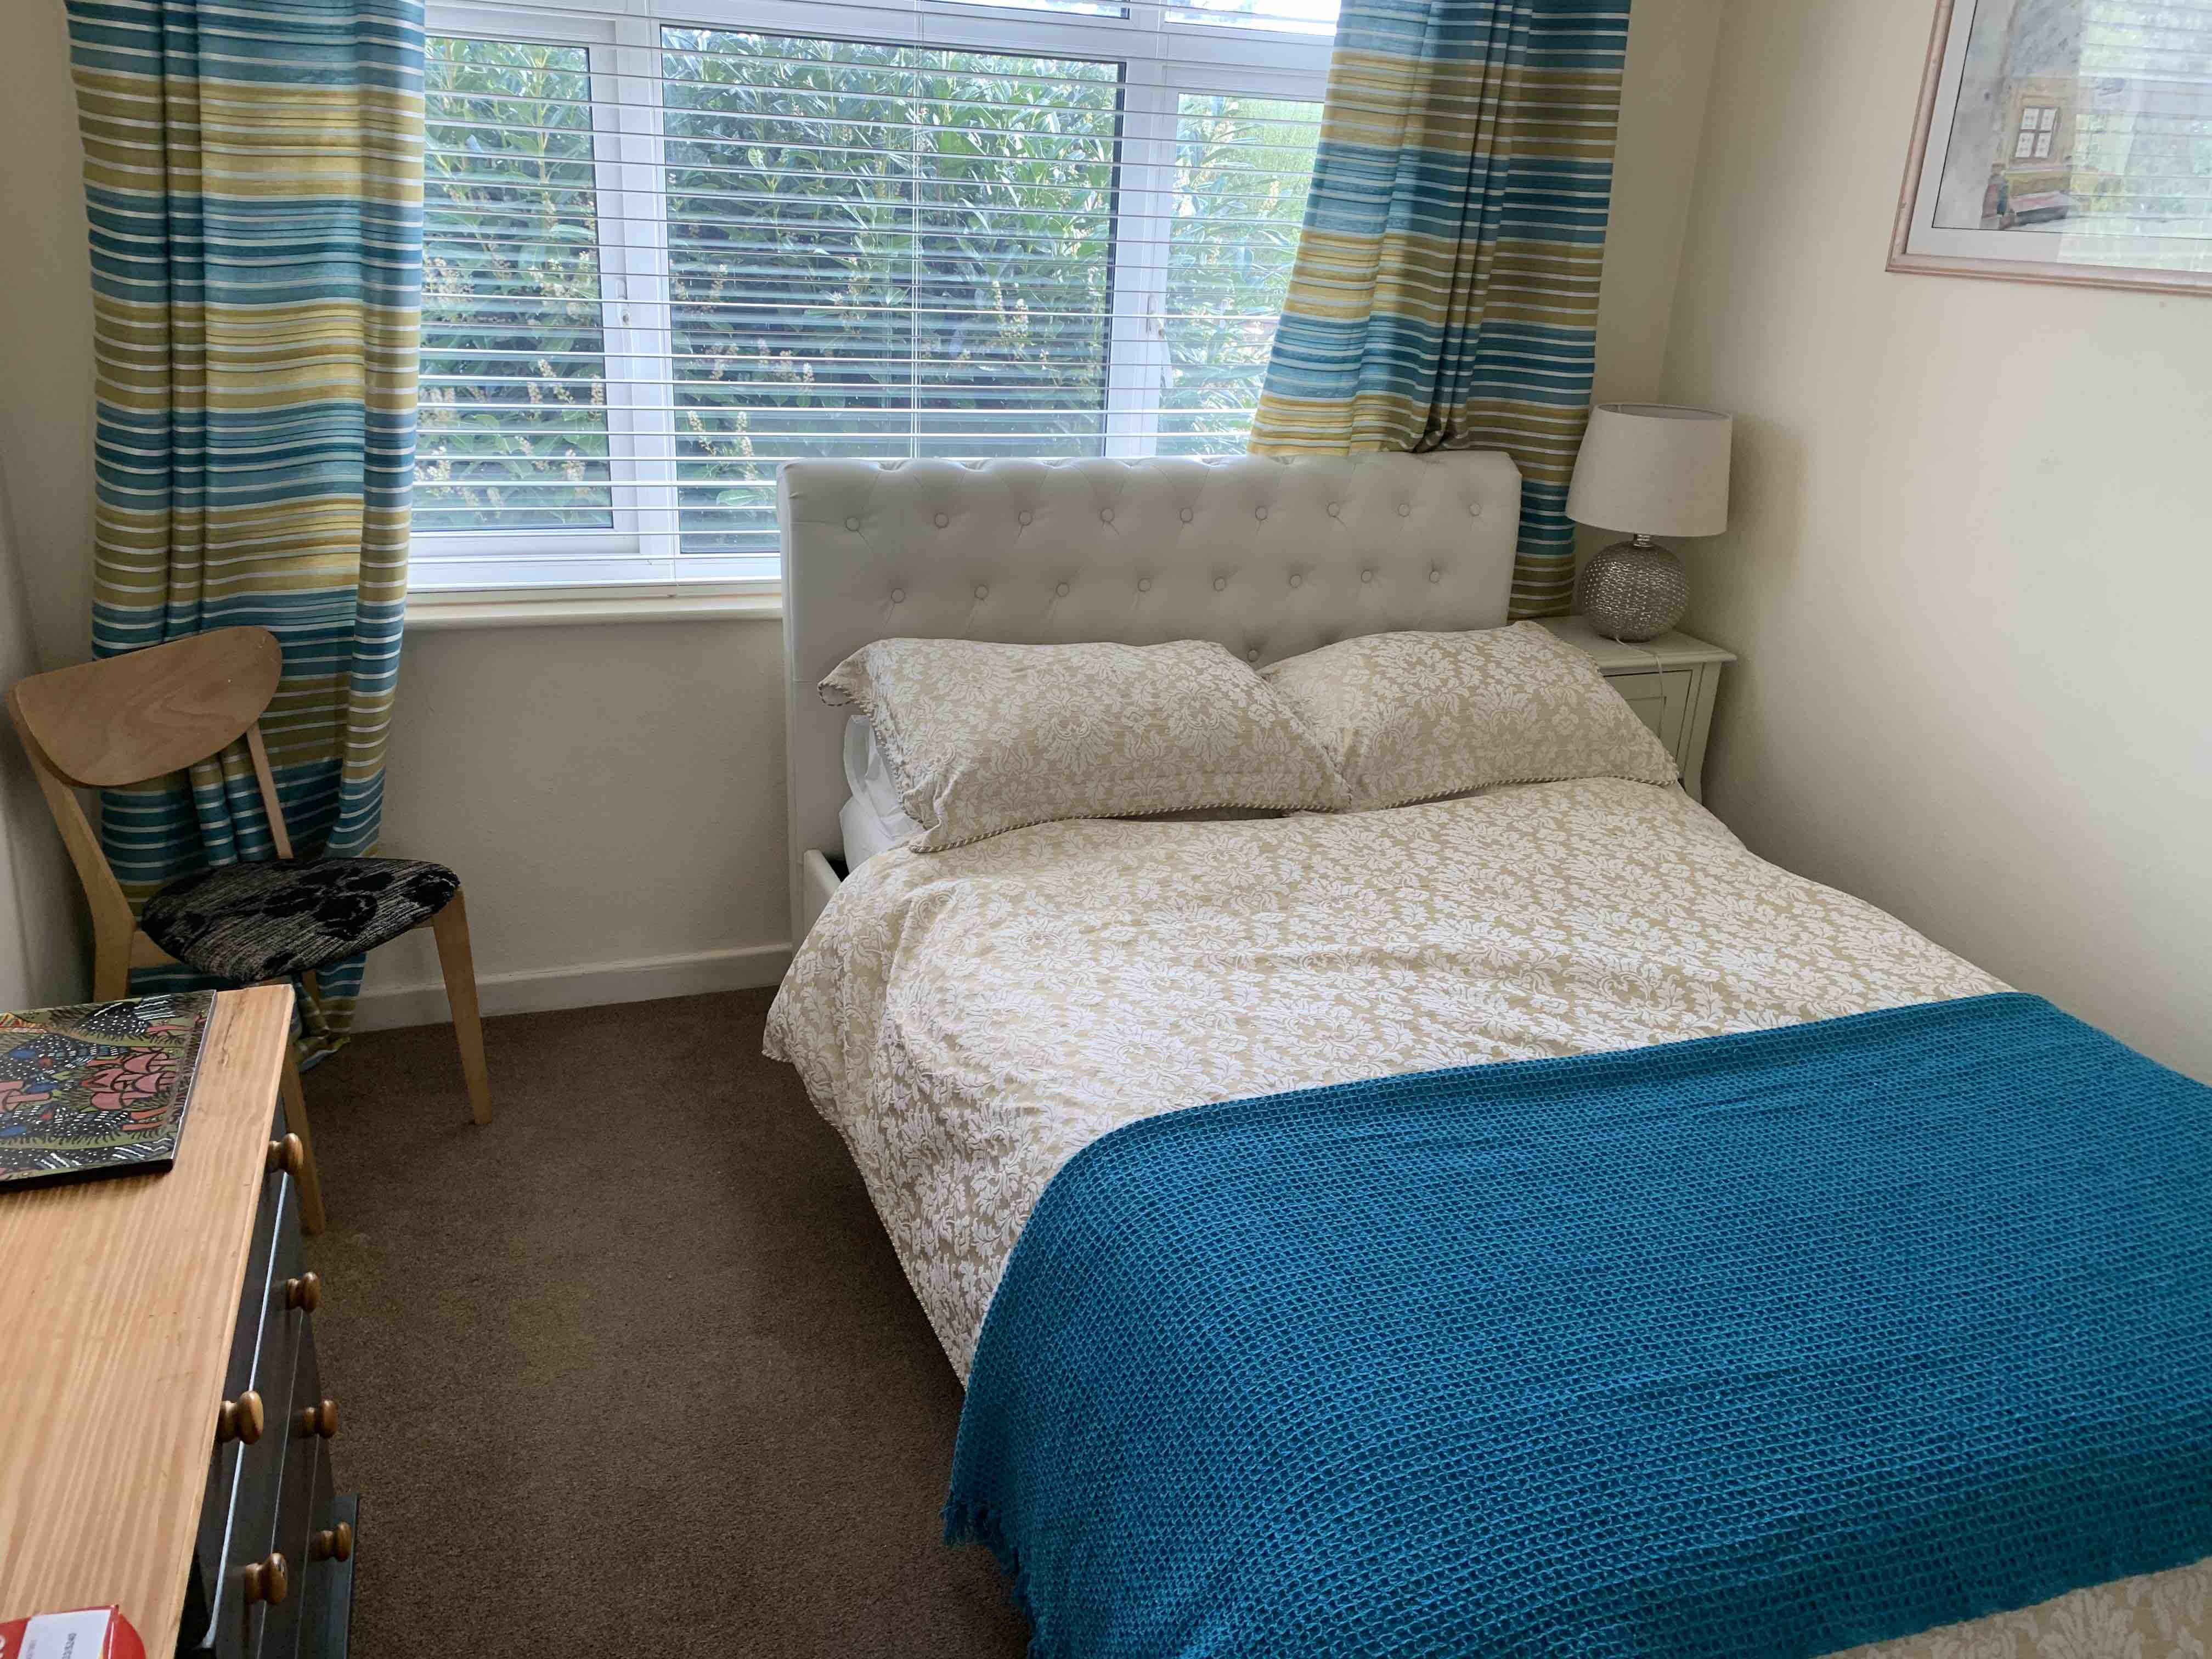 1 room in Dines Green, Worcester, WR2 5HQ RoomsLocal image